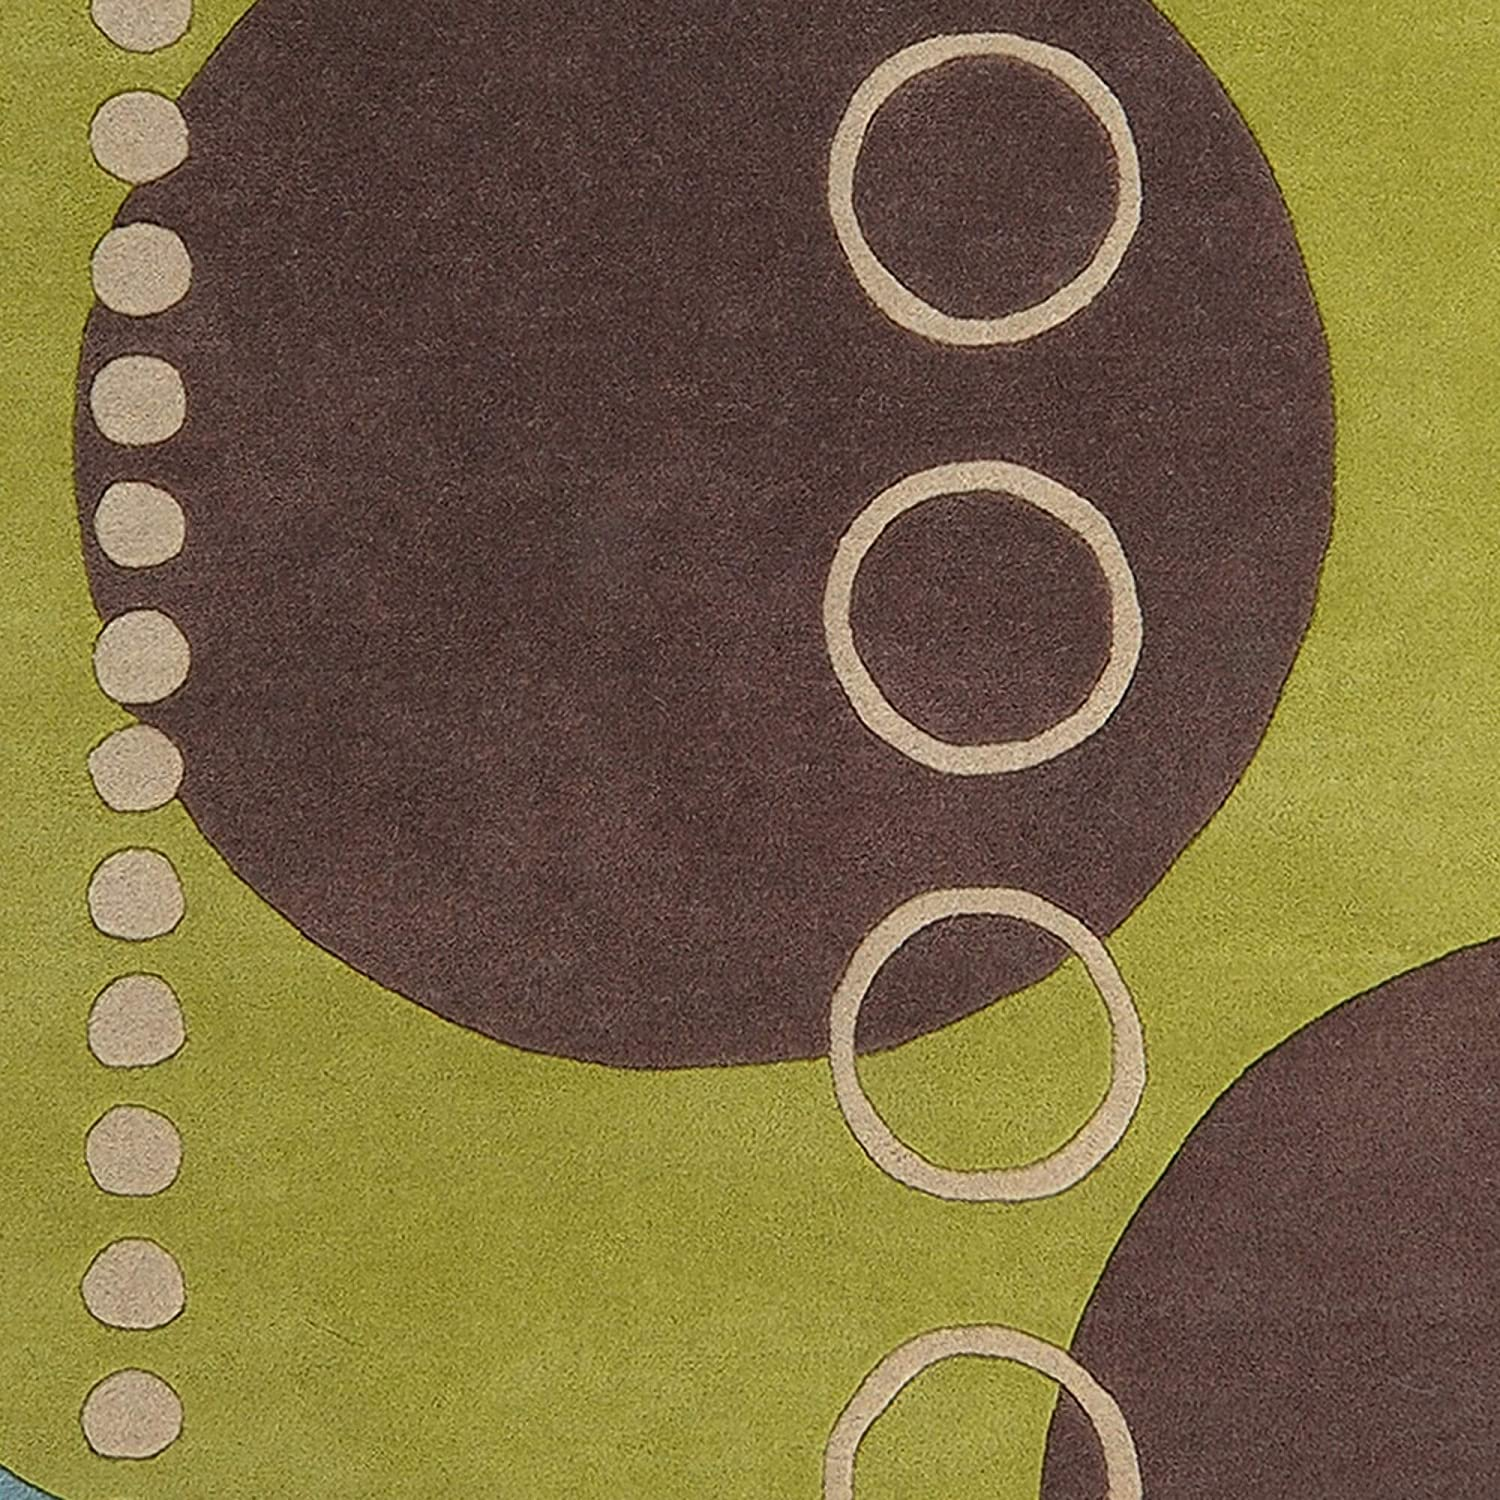 Hand Tufted Contemporary Colored Geometric Circles Wool Abstract Area Rug 4' Round Blue Modern Contains Latex Handmade